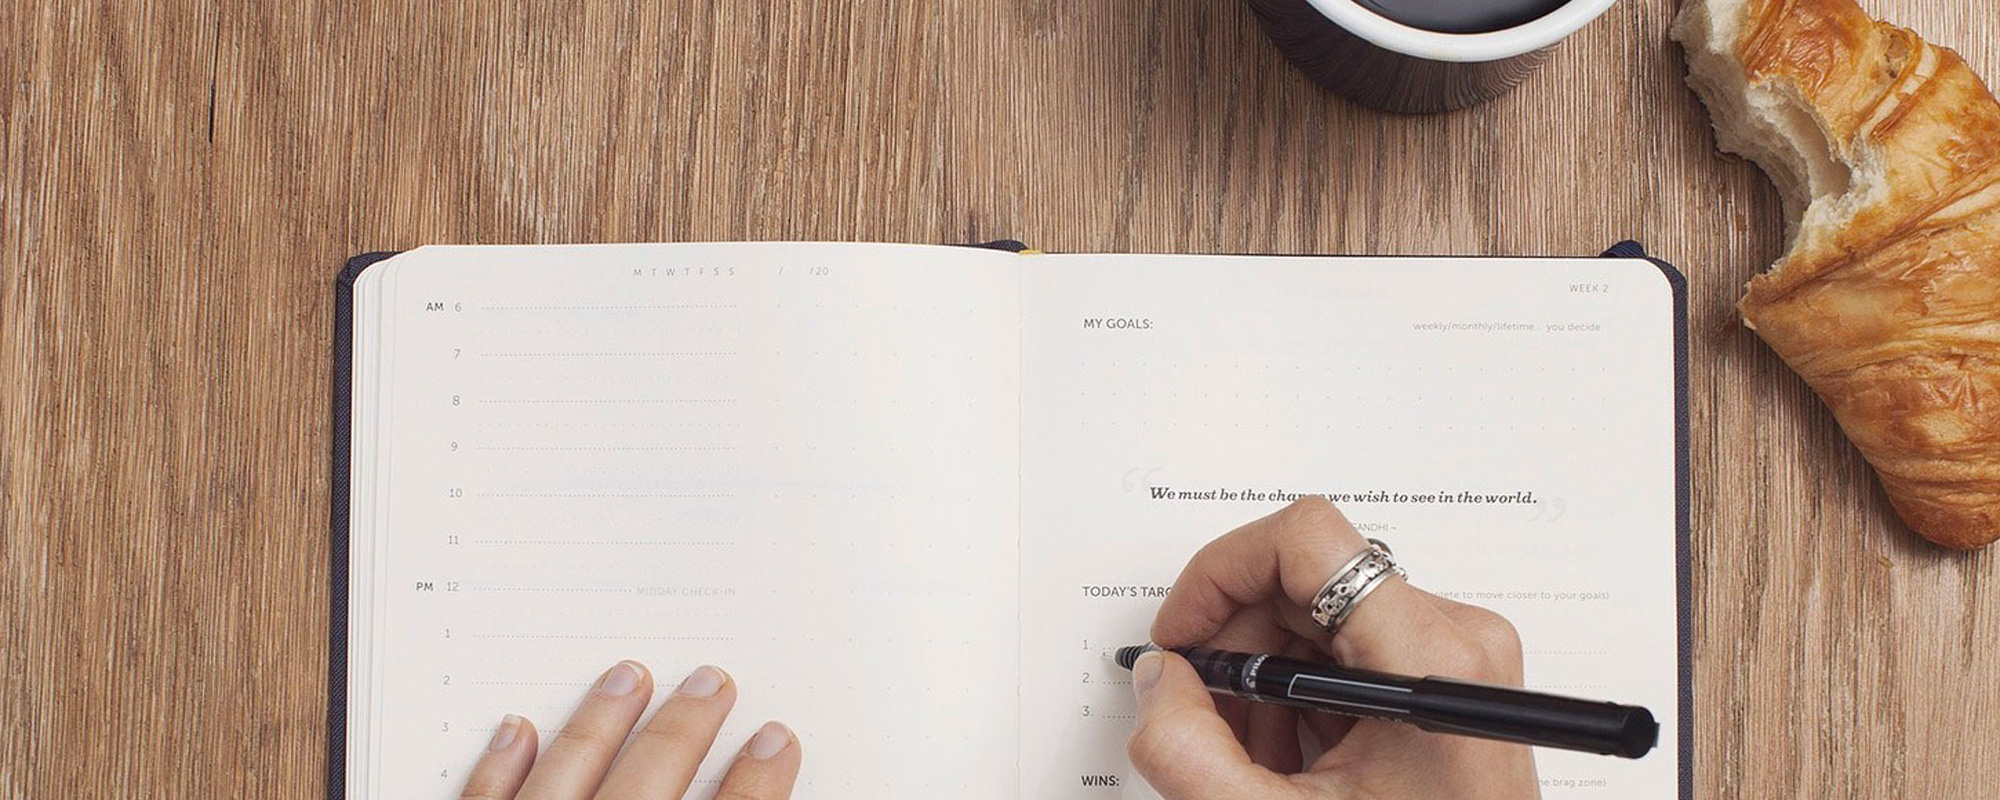 The Power Of Writing Down Your Goals Daily